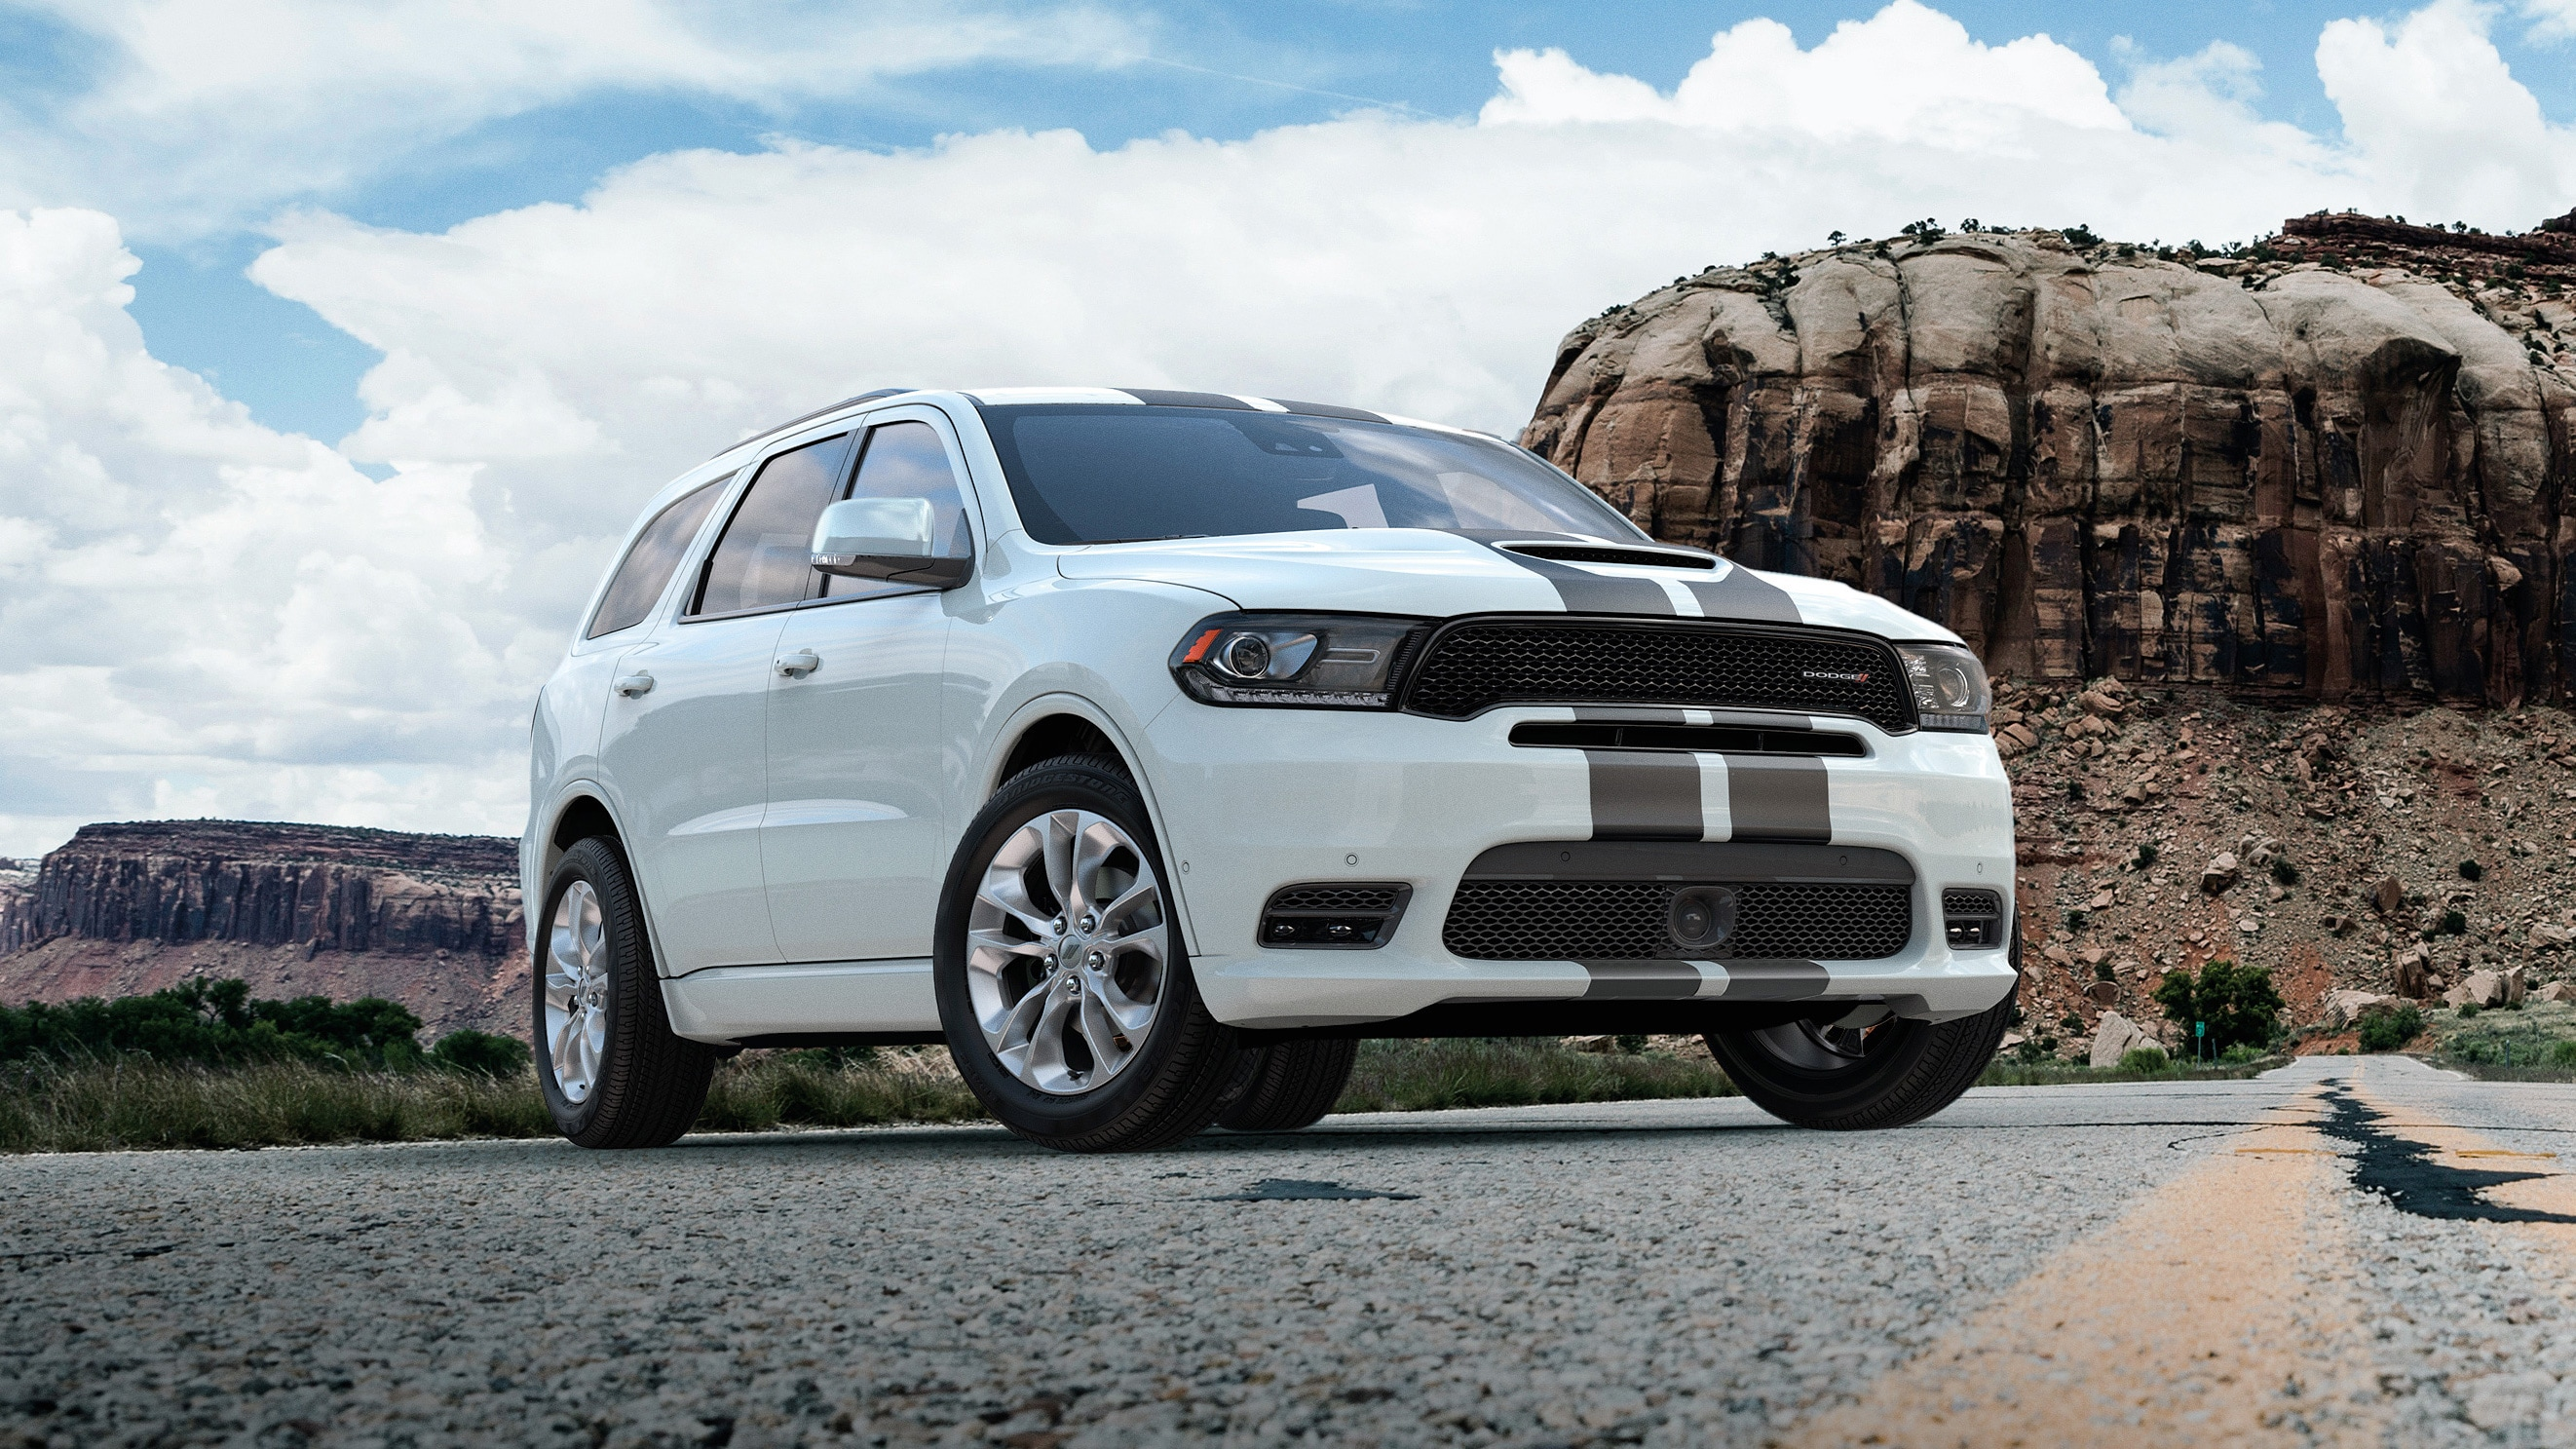 New Dodge Durango | Suburban Chrysler Dodge Jeep Ram of Garden City